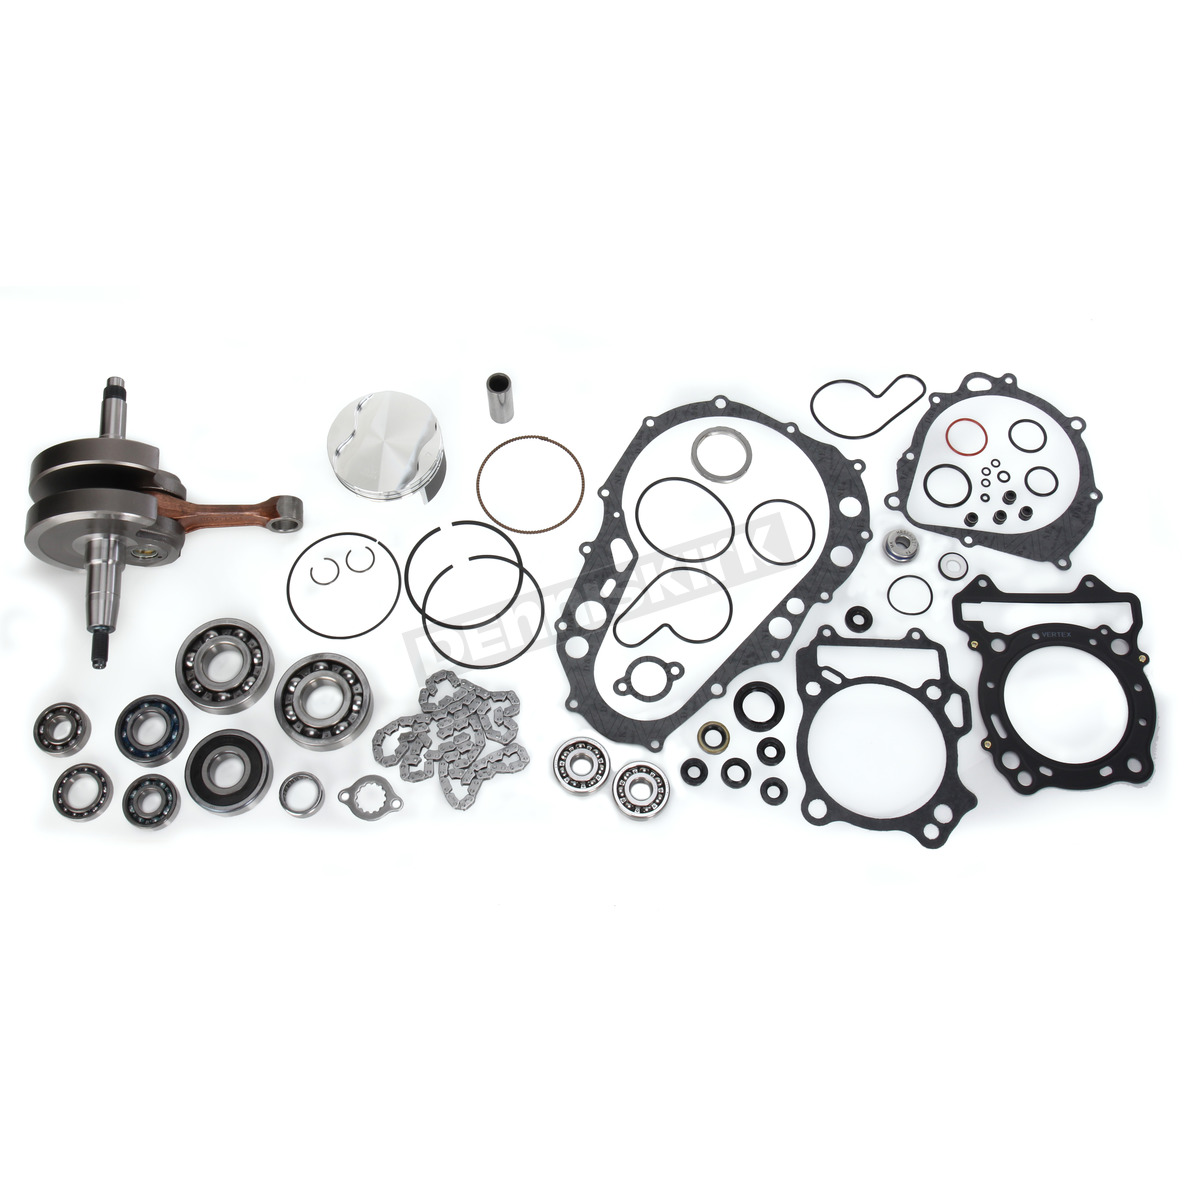 Wrench Rabbit Complete Engine Rebuild Kit 90mm Bore